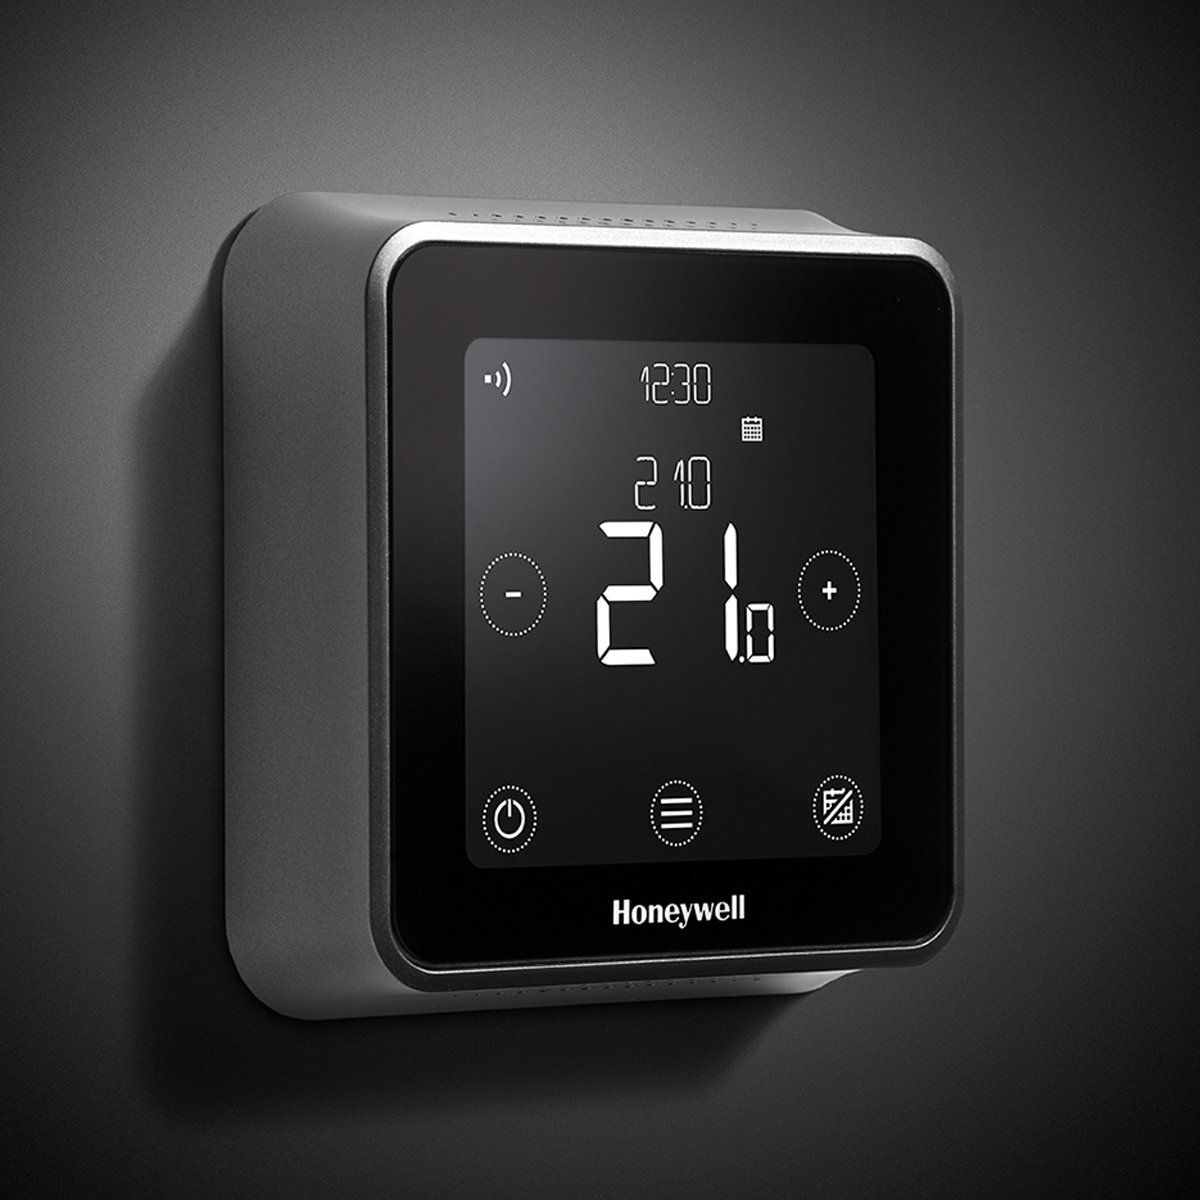 Honeywell Lyric T6 smart thermostat Smart thermostats